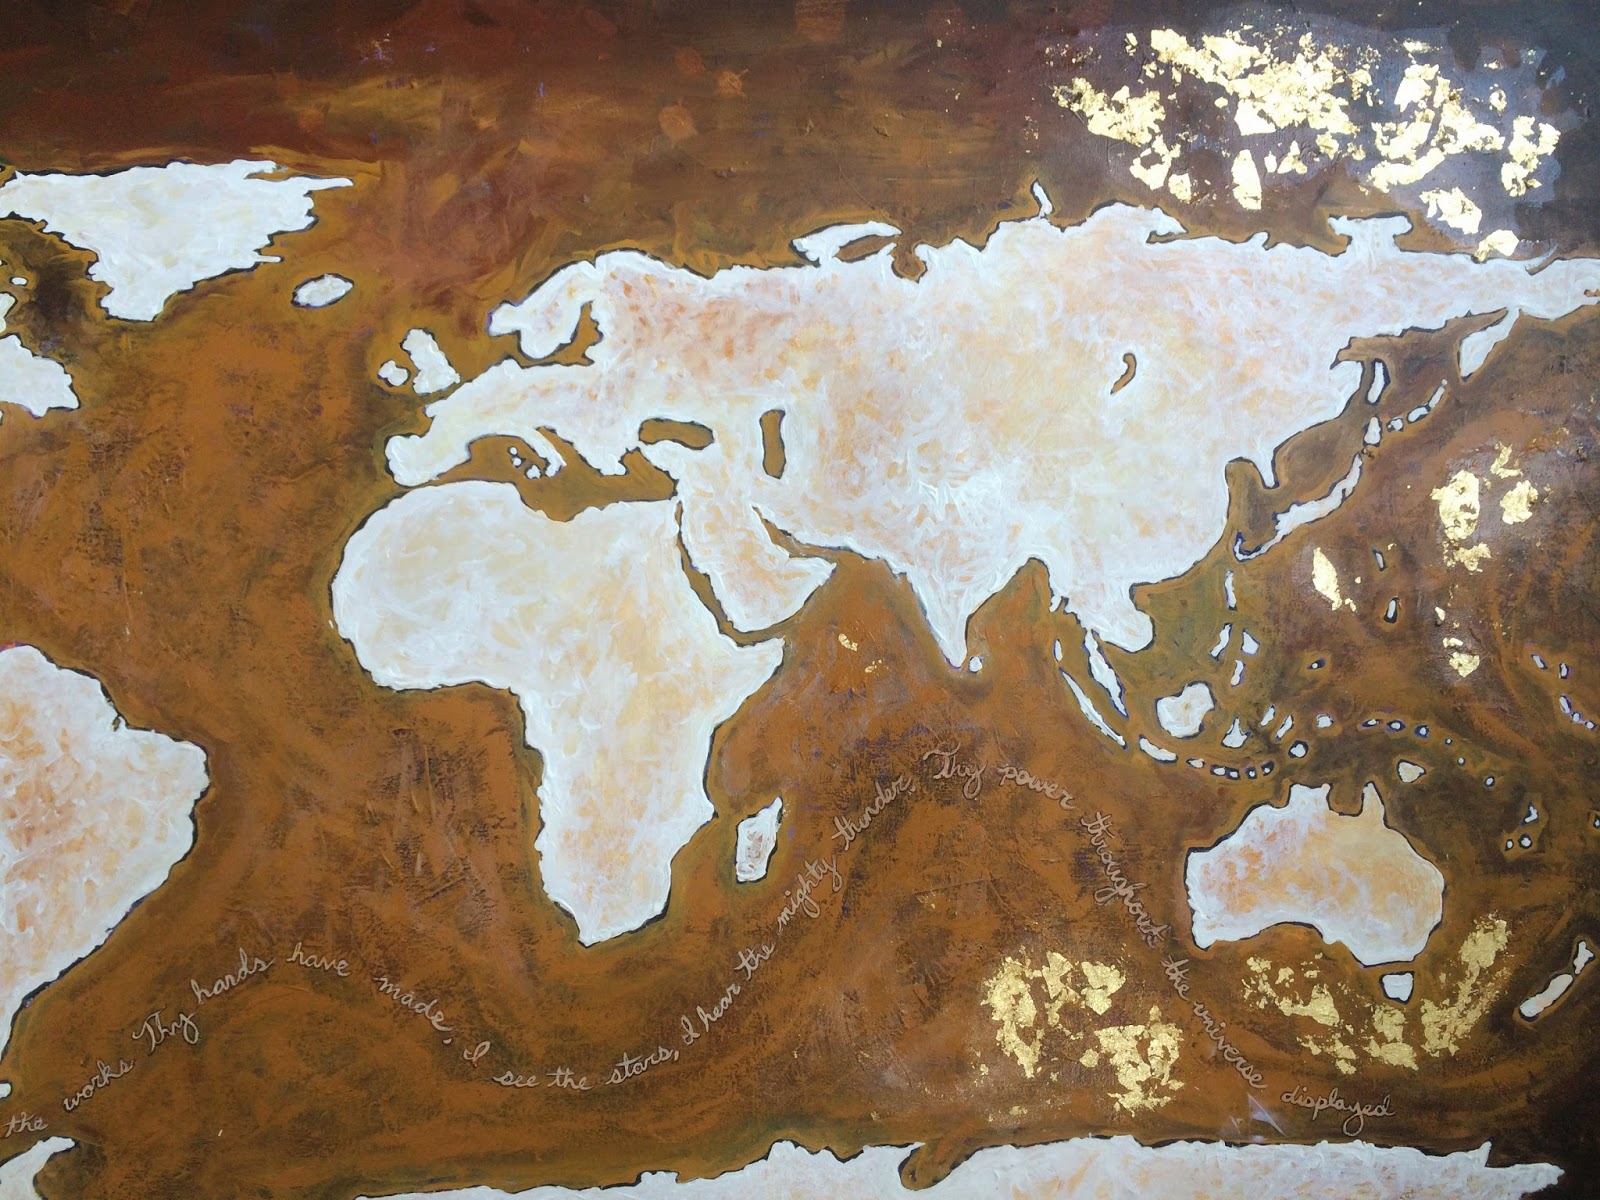 Stephen lursen art custom world map with gold leaf sold they didnt ask for gold leaf but i love it so much that i couldnt help myself i love how the bright reflective gold contrasts so nicely against the dark gumiabroncs Choice Image